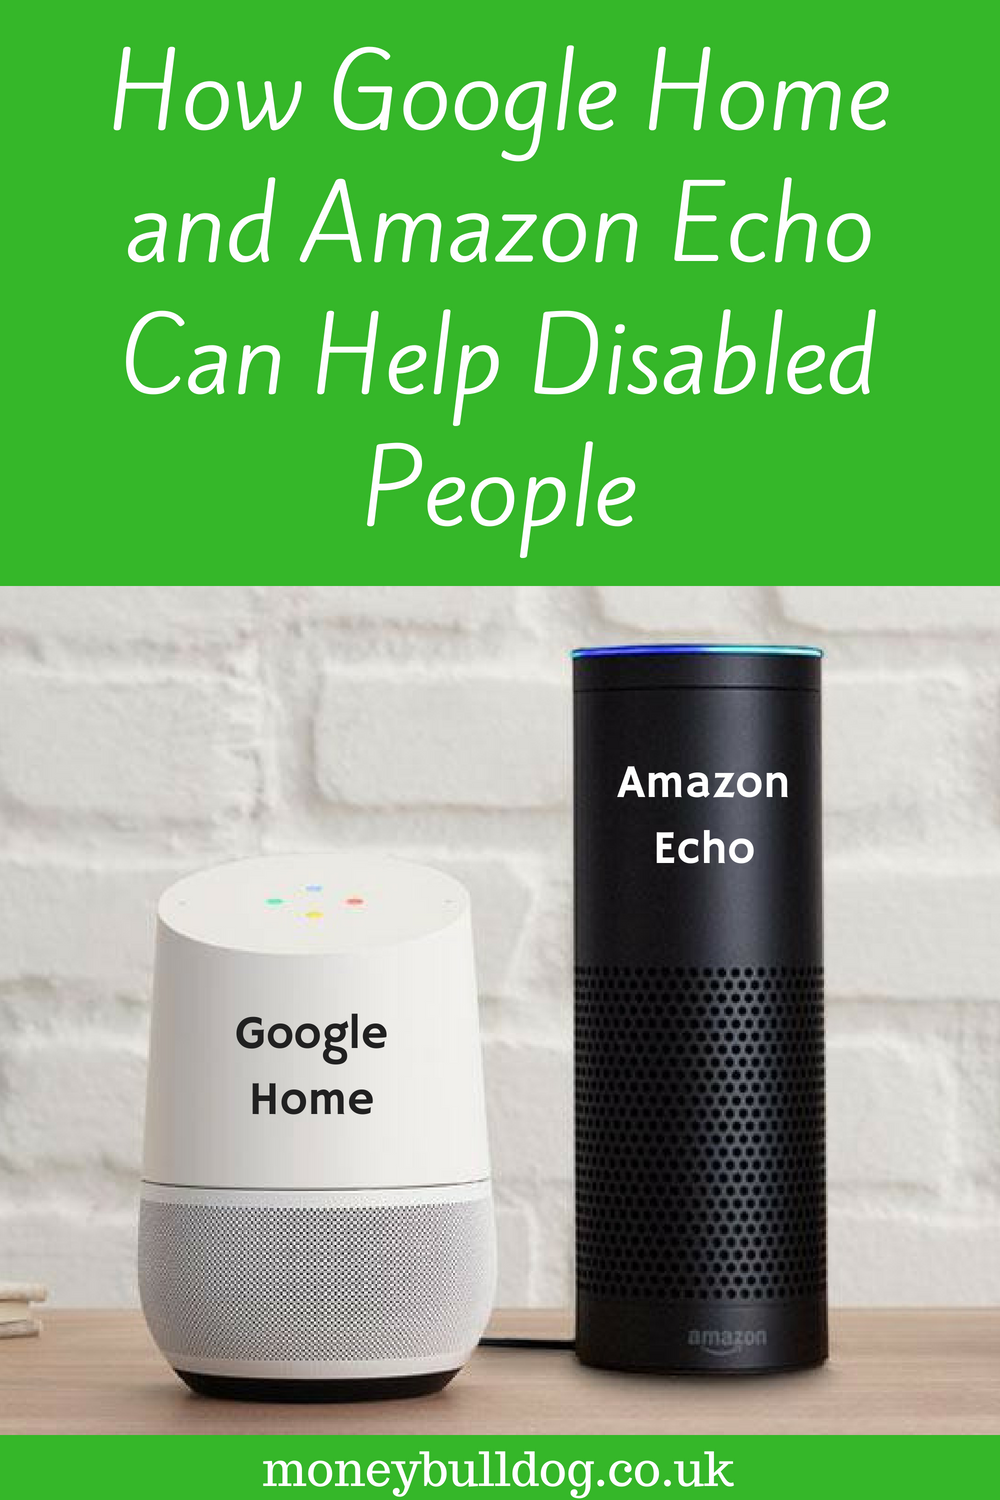 How Google Home and Amazon Echo Can Help Disabled People